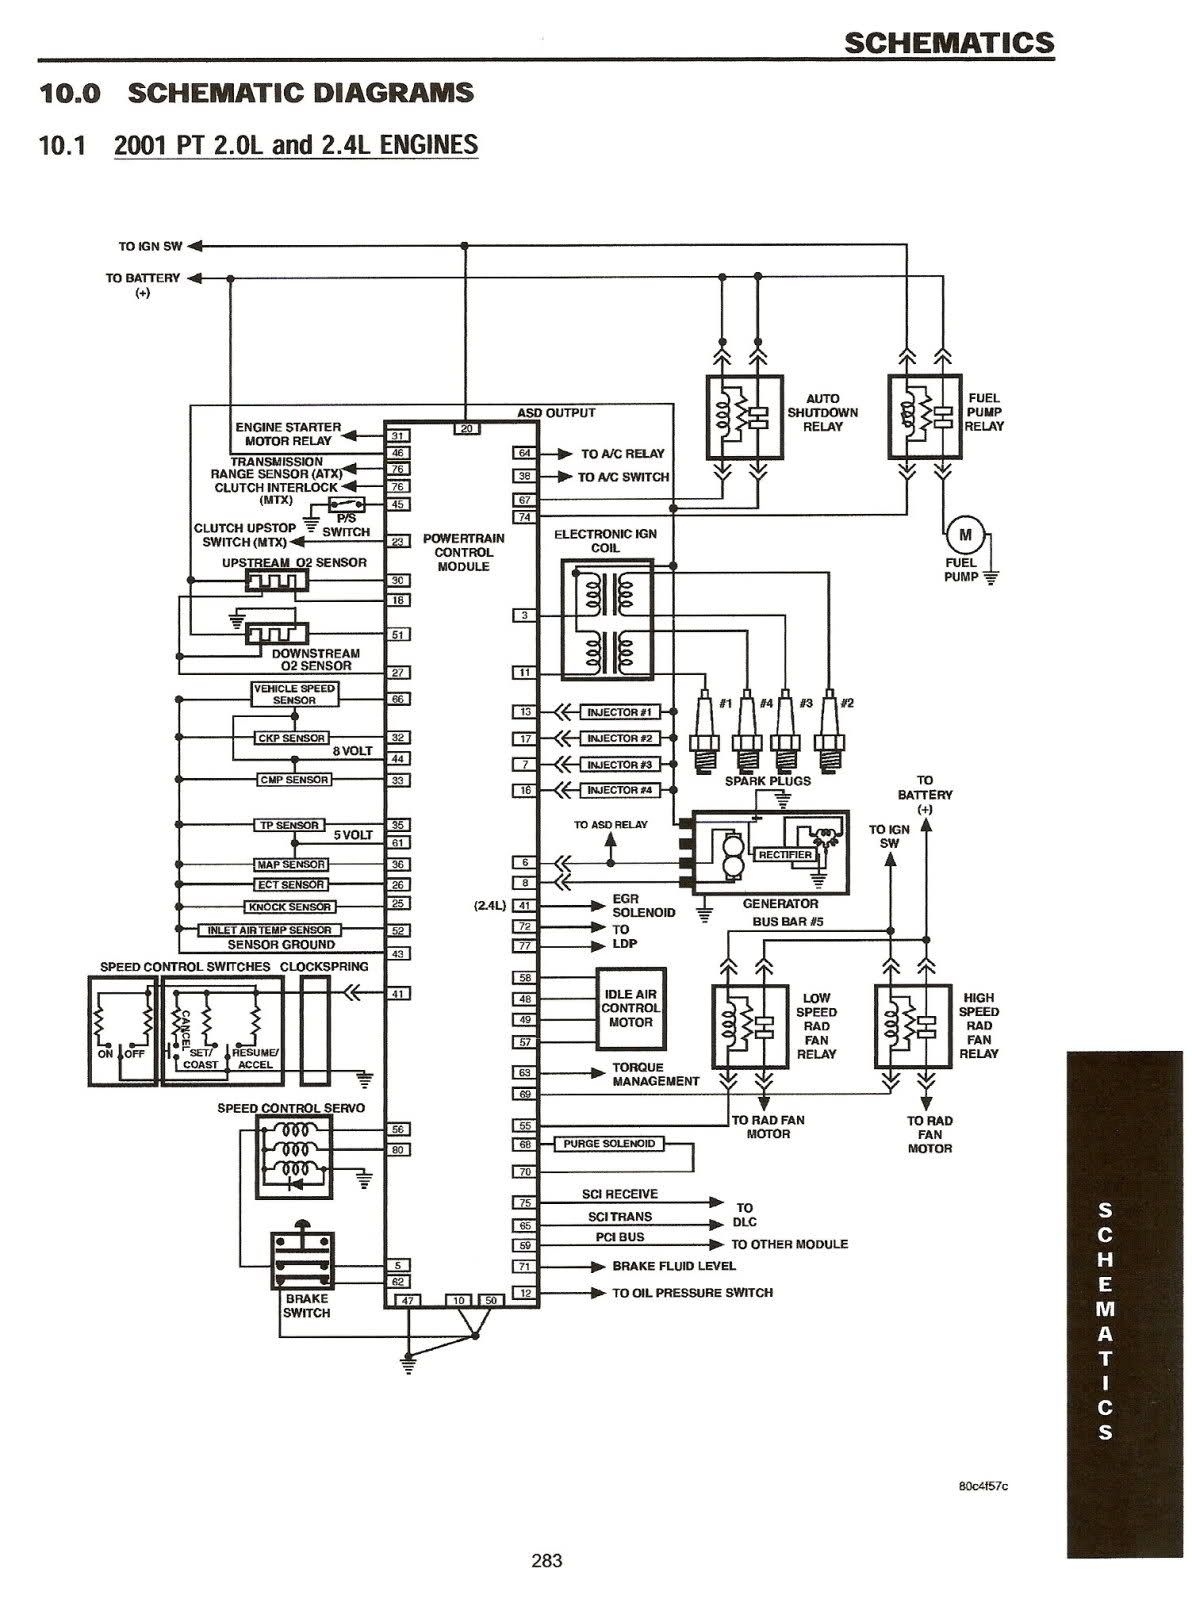 2001 pt cruiser wiring diagram | free wiring diagram 2008 chrysler pt cruiser wiring diagram #5